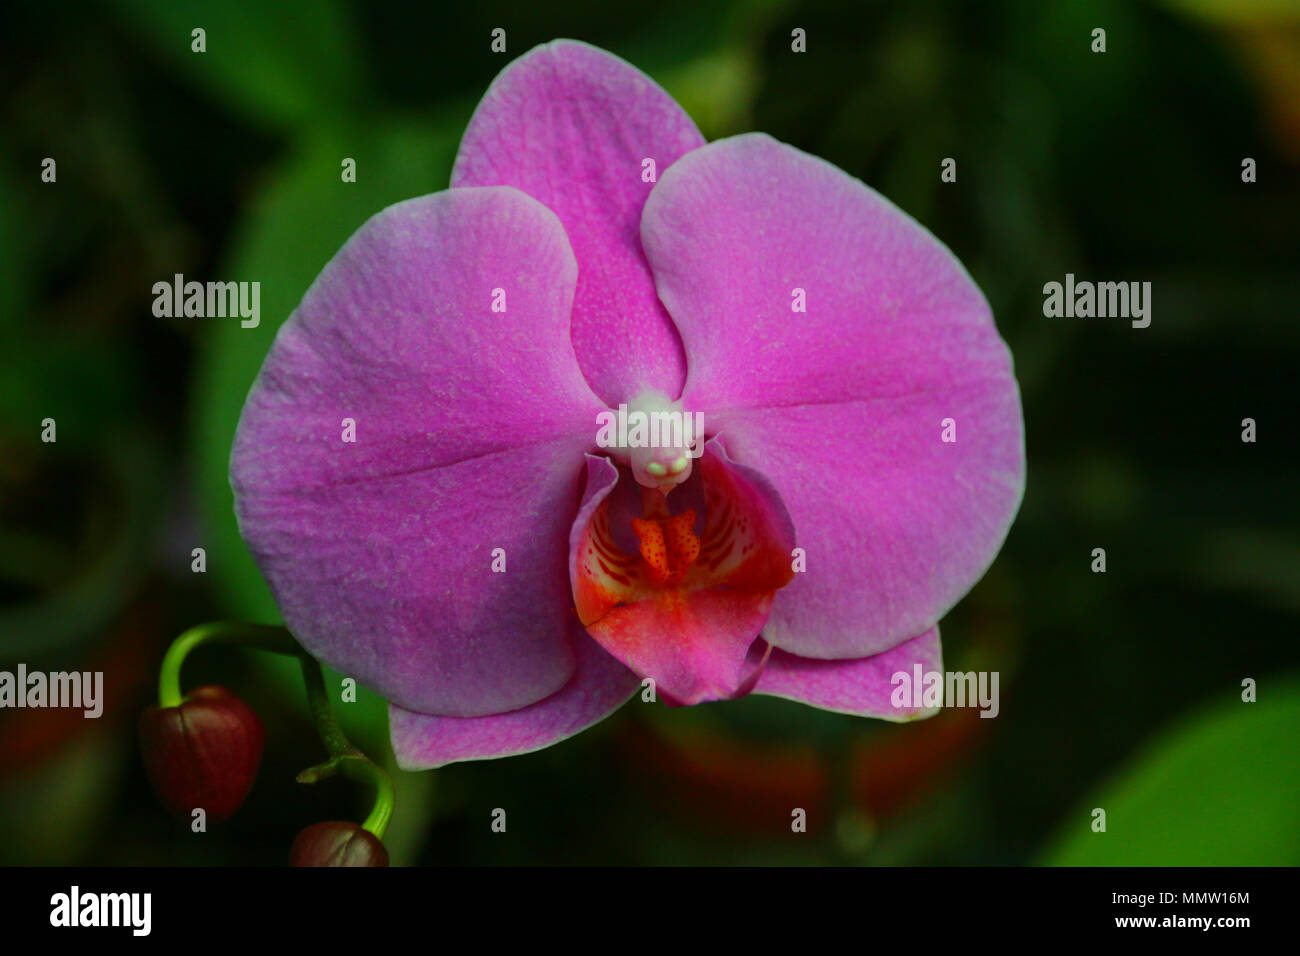 Magneficient pink / purple coloured orchid in a botanic garden. - Stock Image